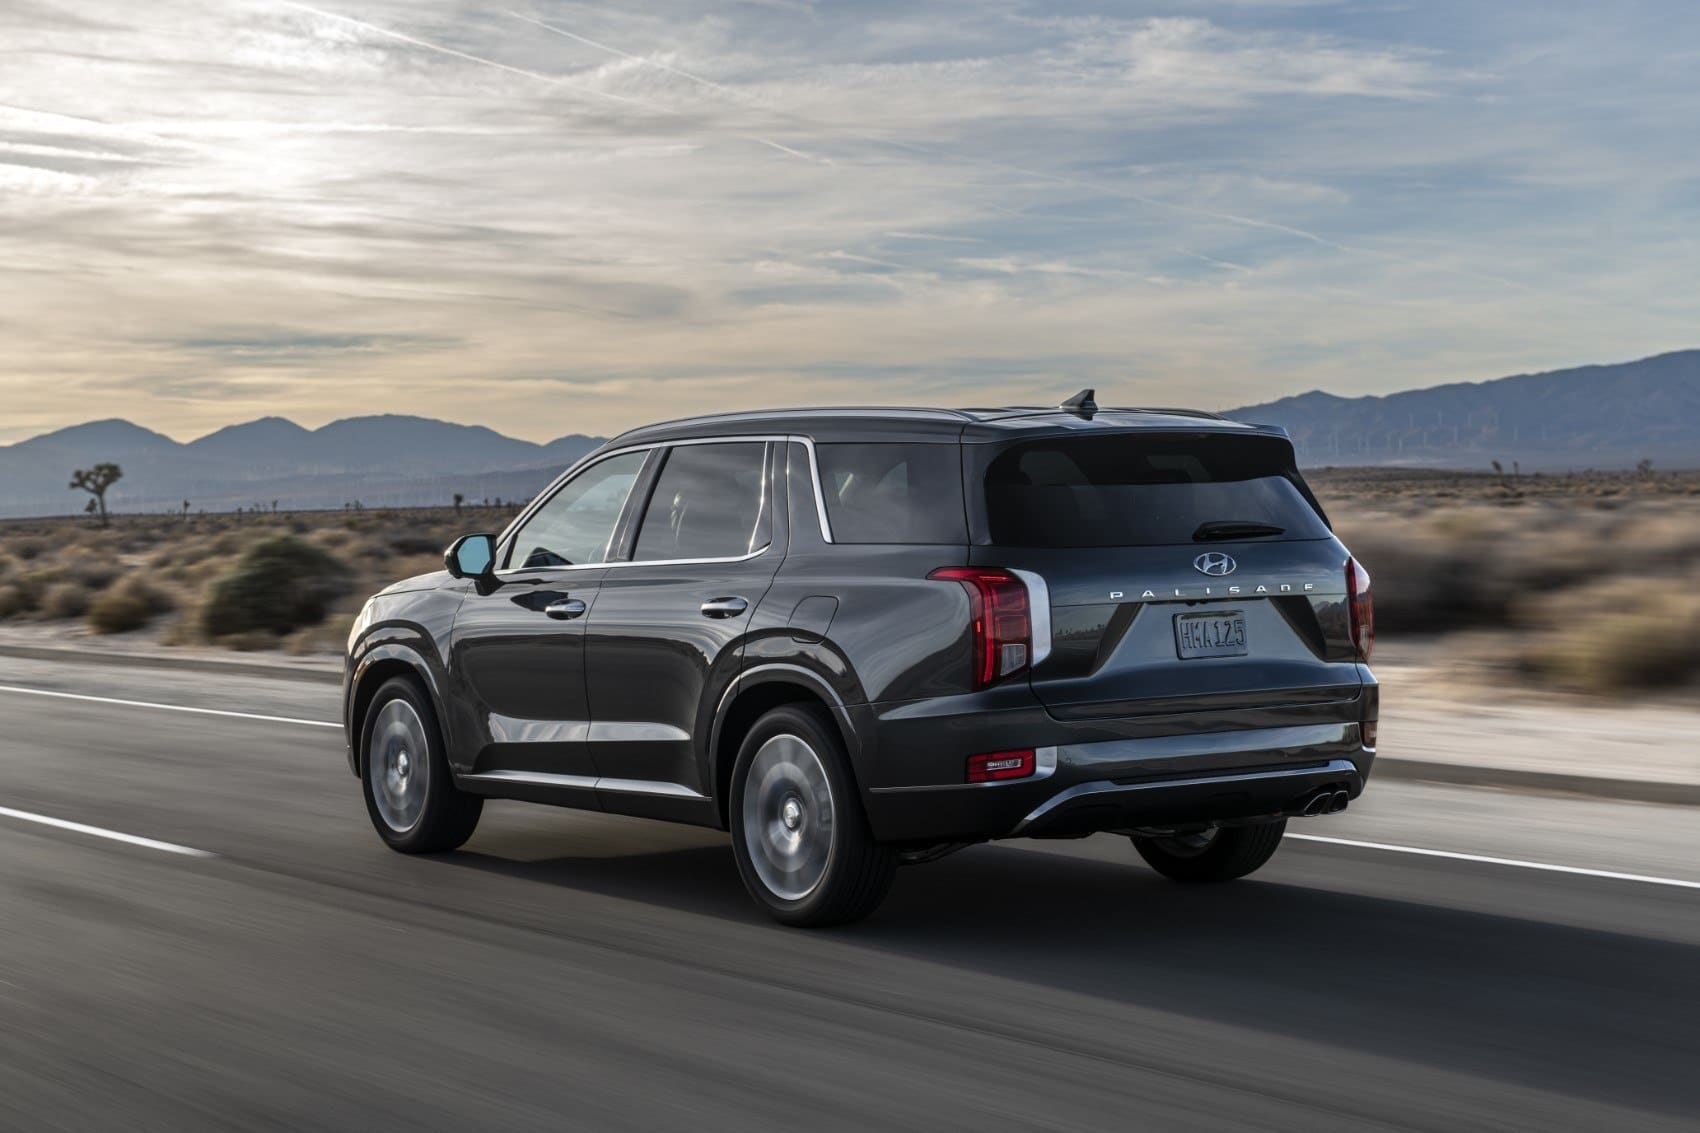 2020 Hyundai Palisade Review: How Hyundai's New SUV Stacks Up 17